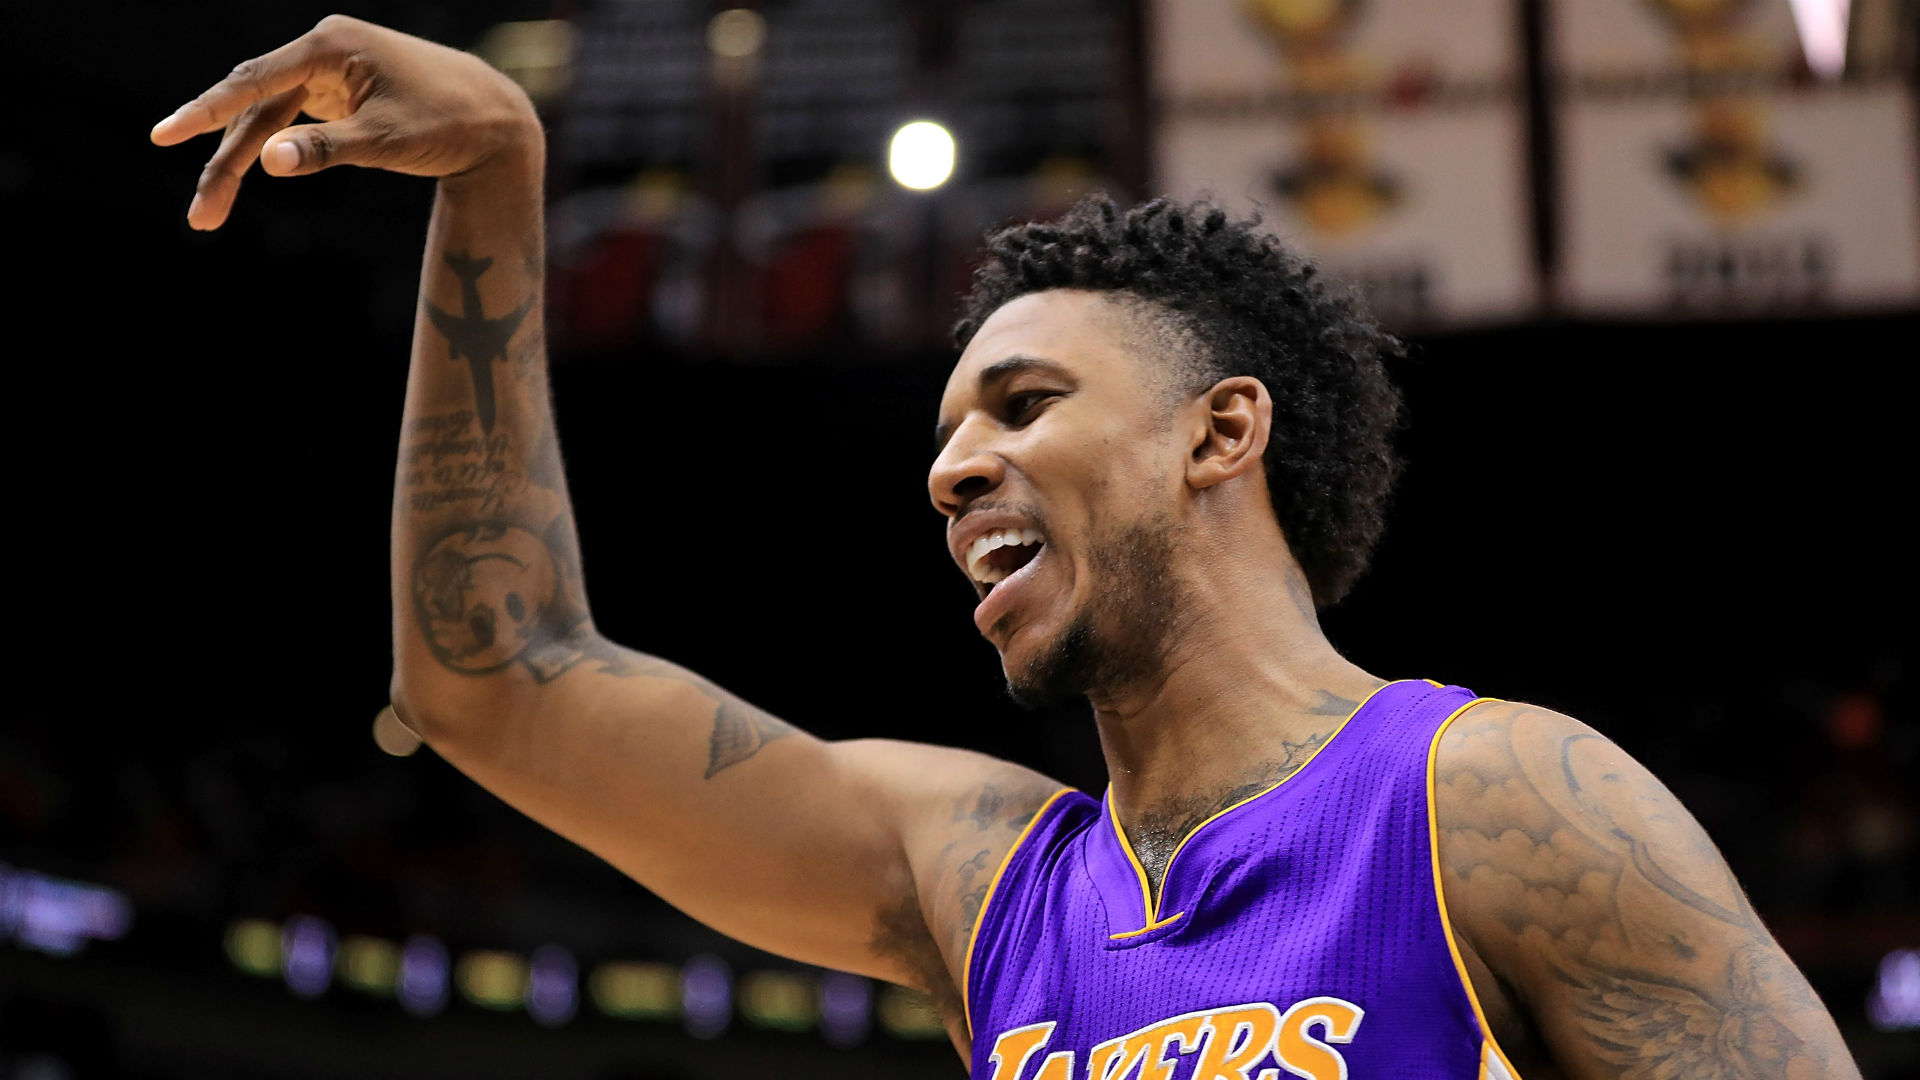 Nick-Young-FTR-Getty-Images.jpg